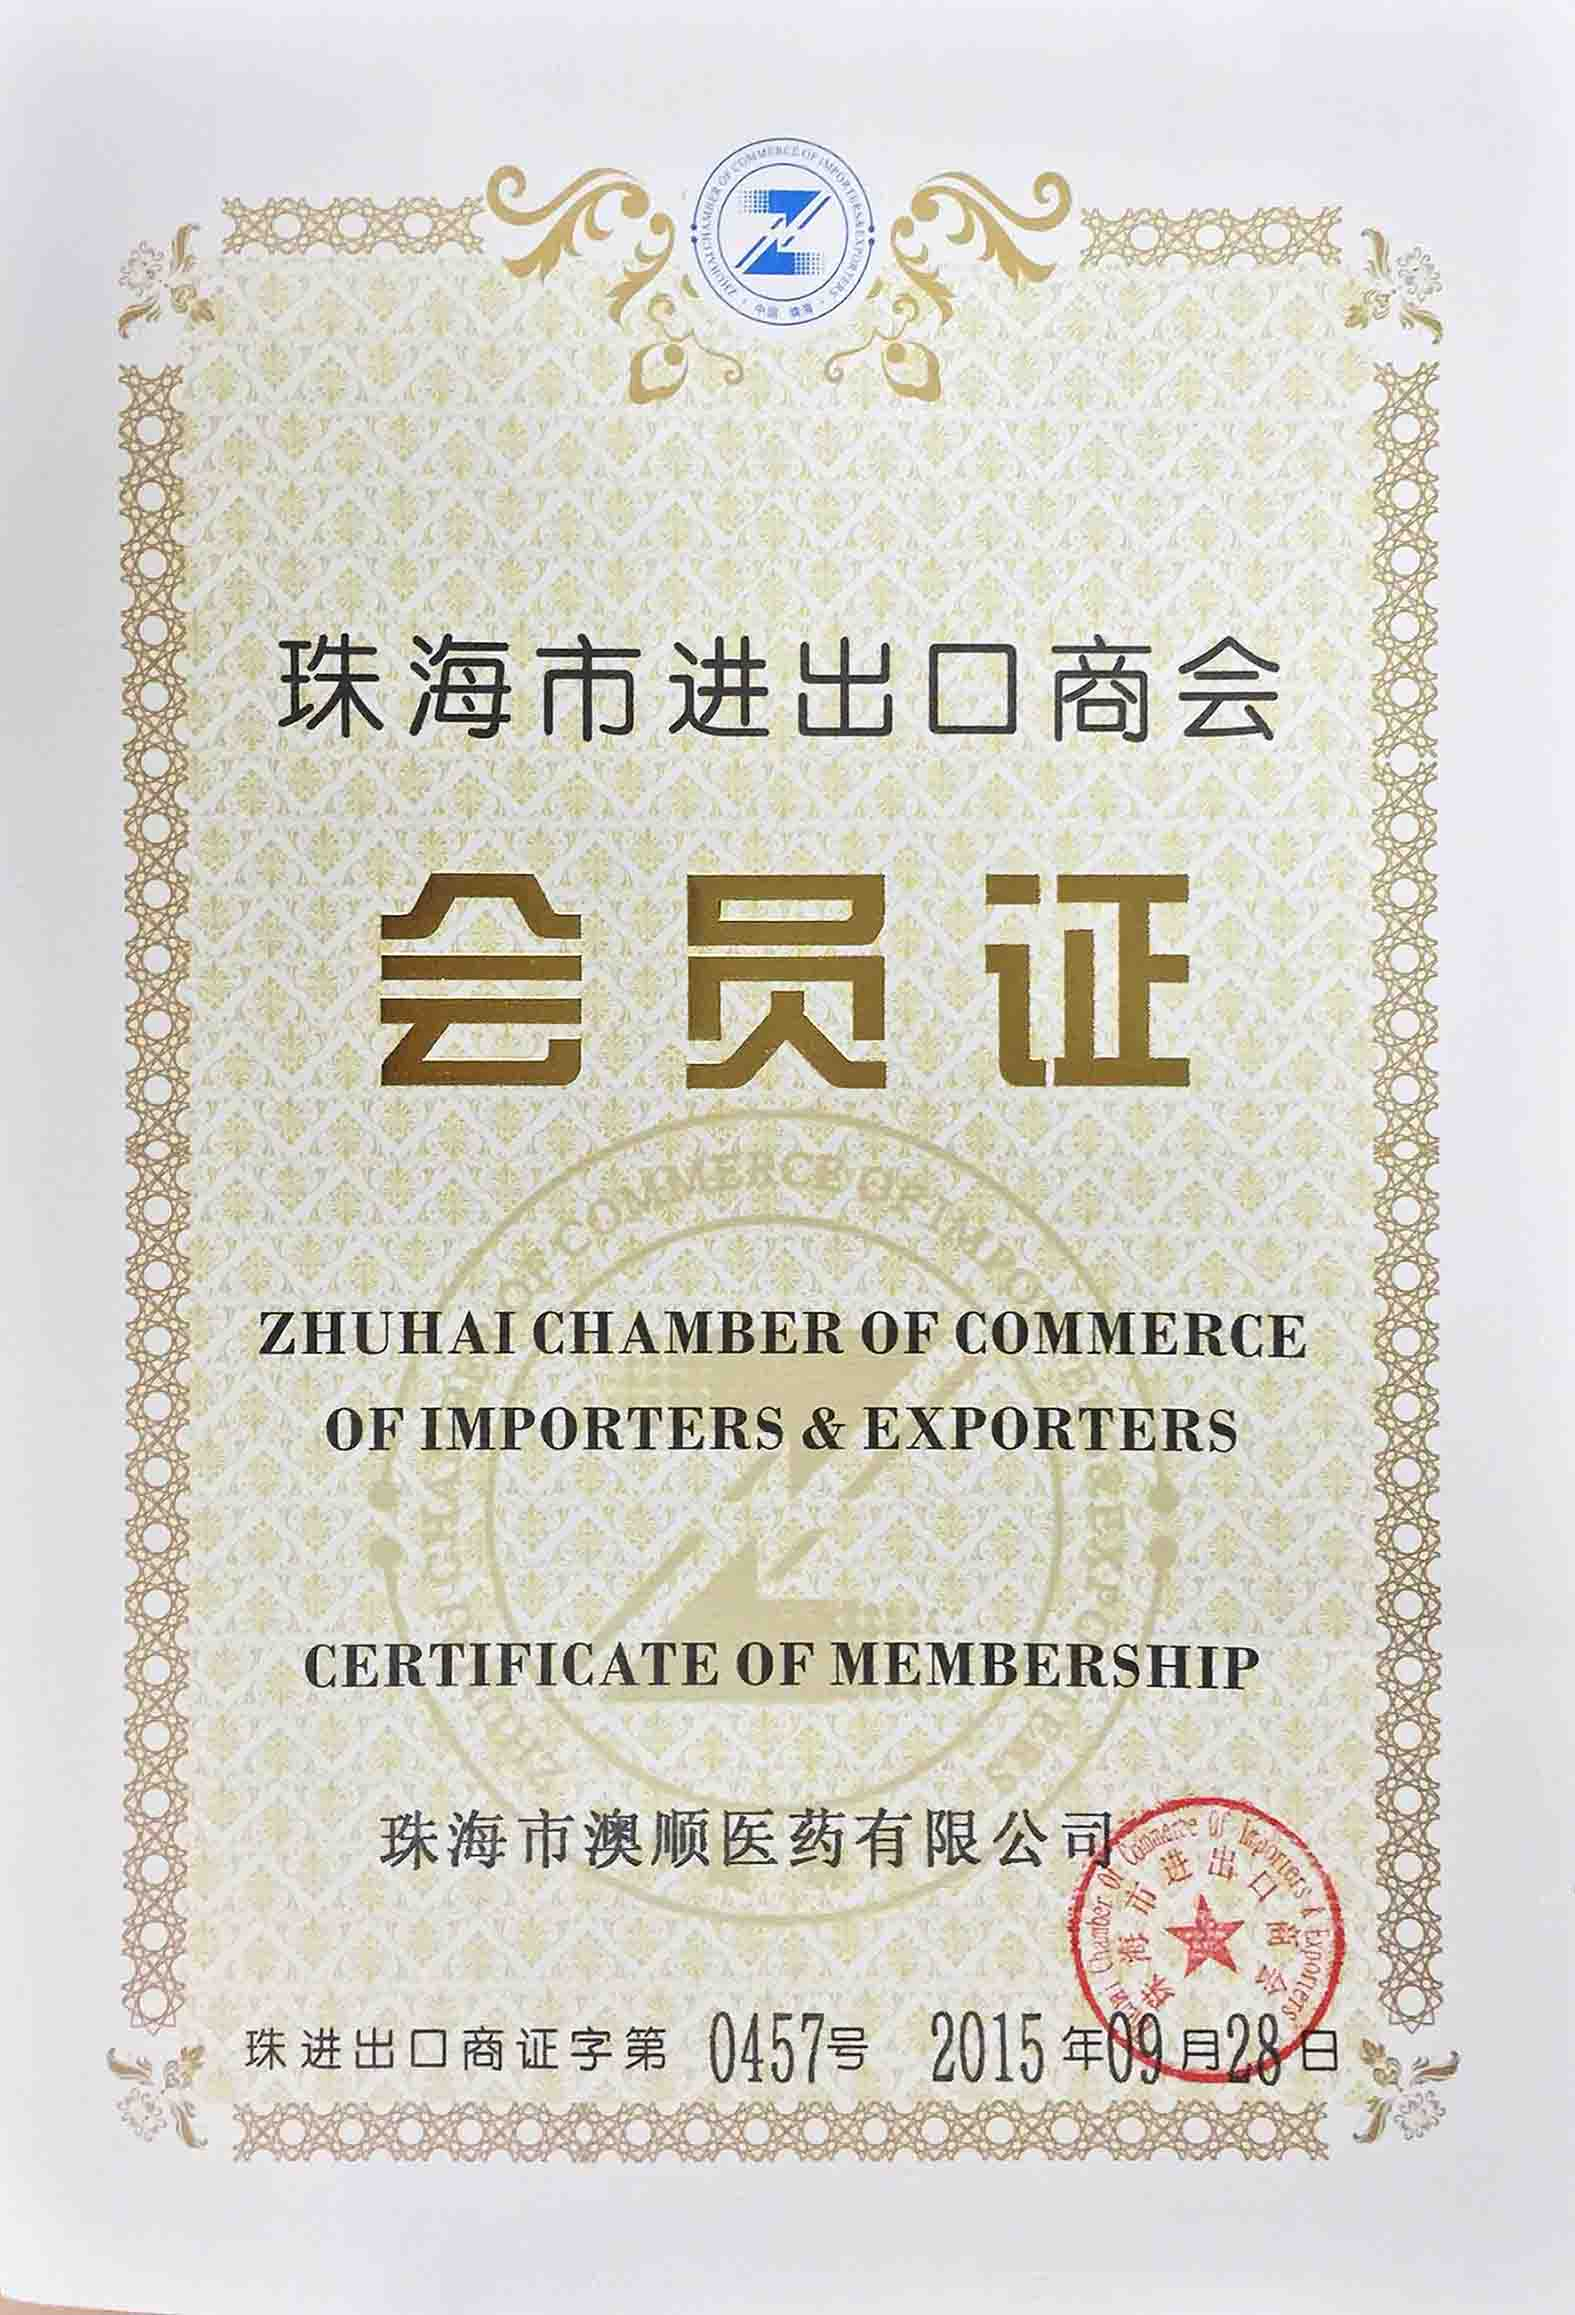 zhuhai chamber of commerce of importers & exporters certificate of membership